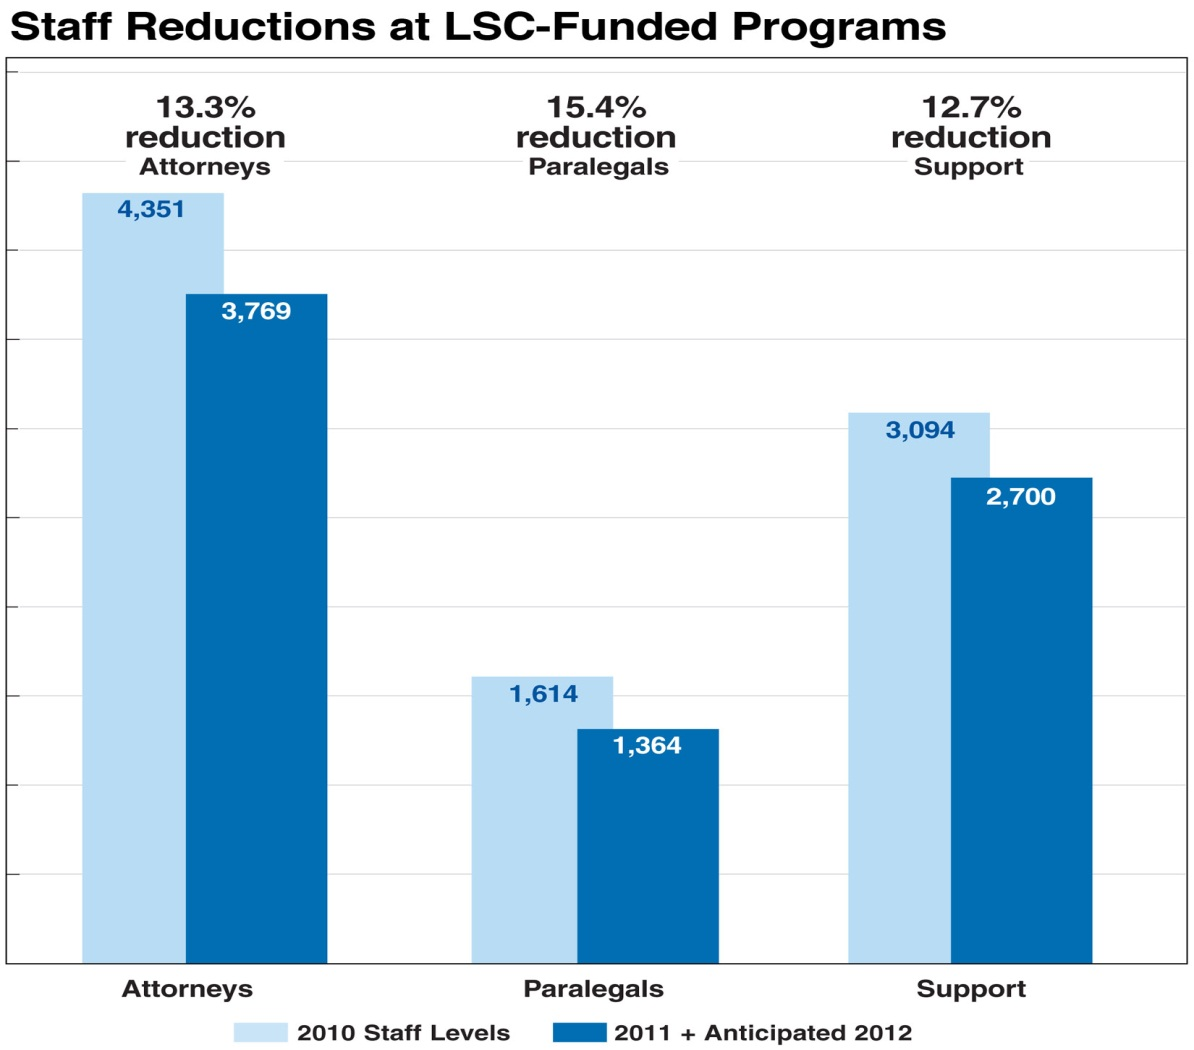 Bar graph showing staff reductions at LSC-funded programs